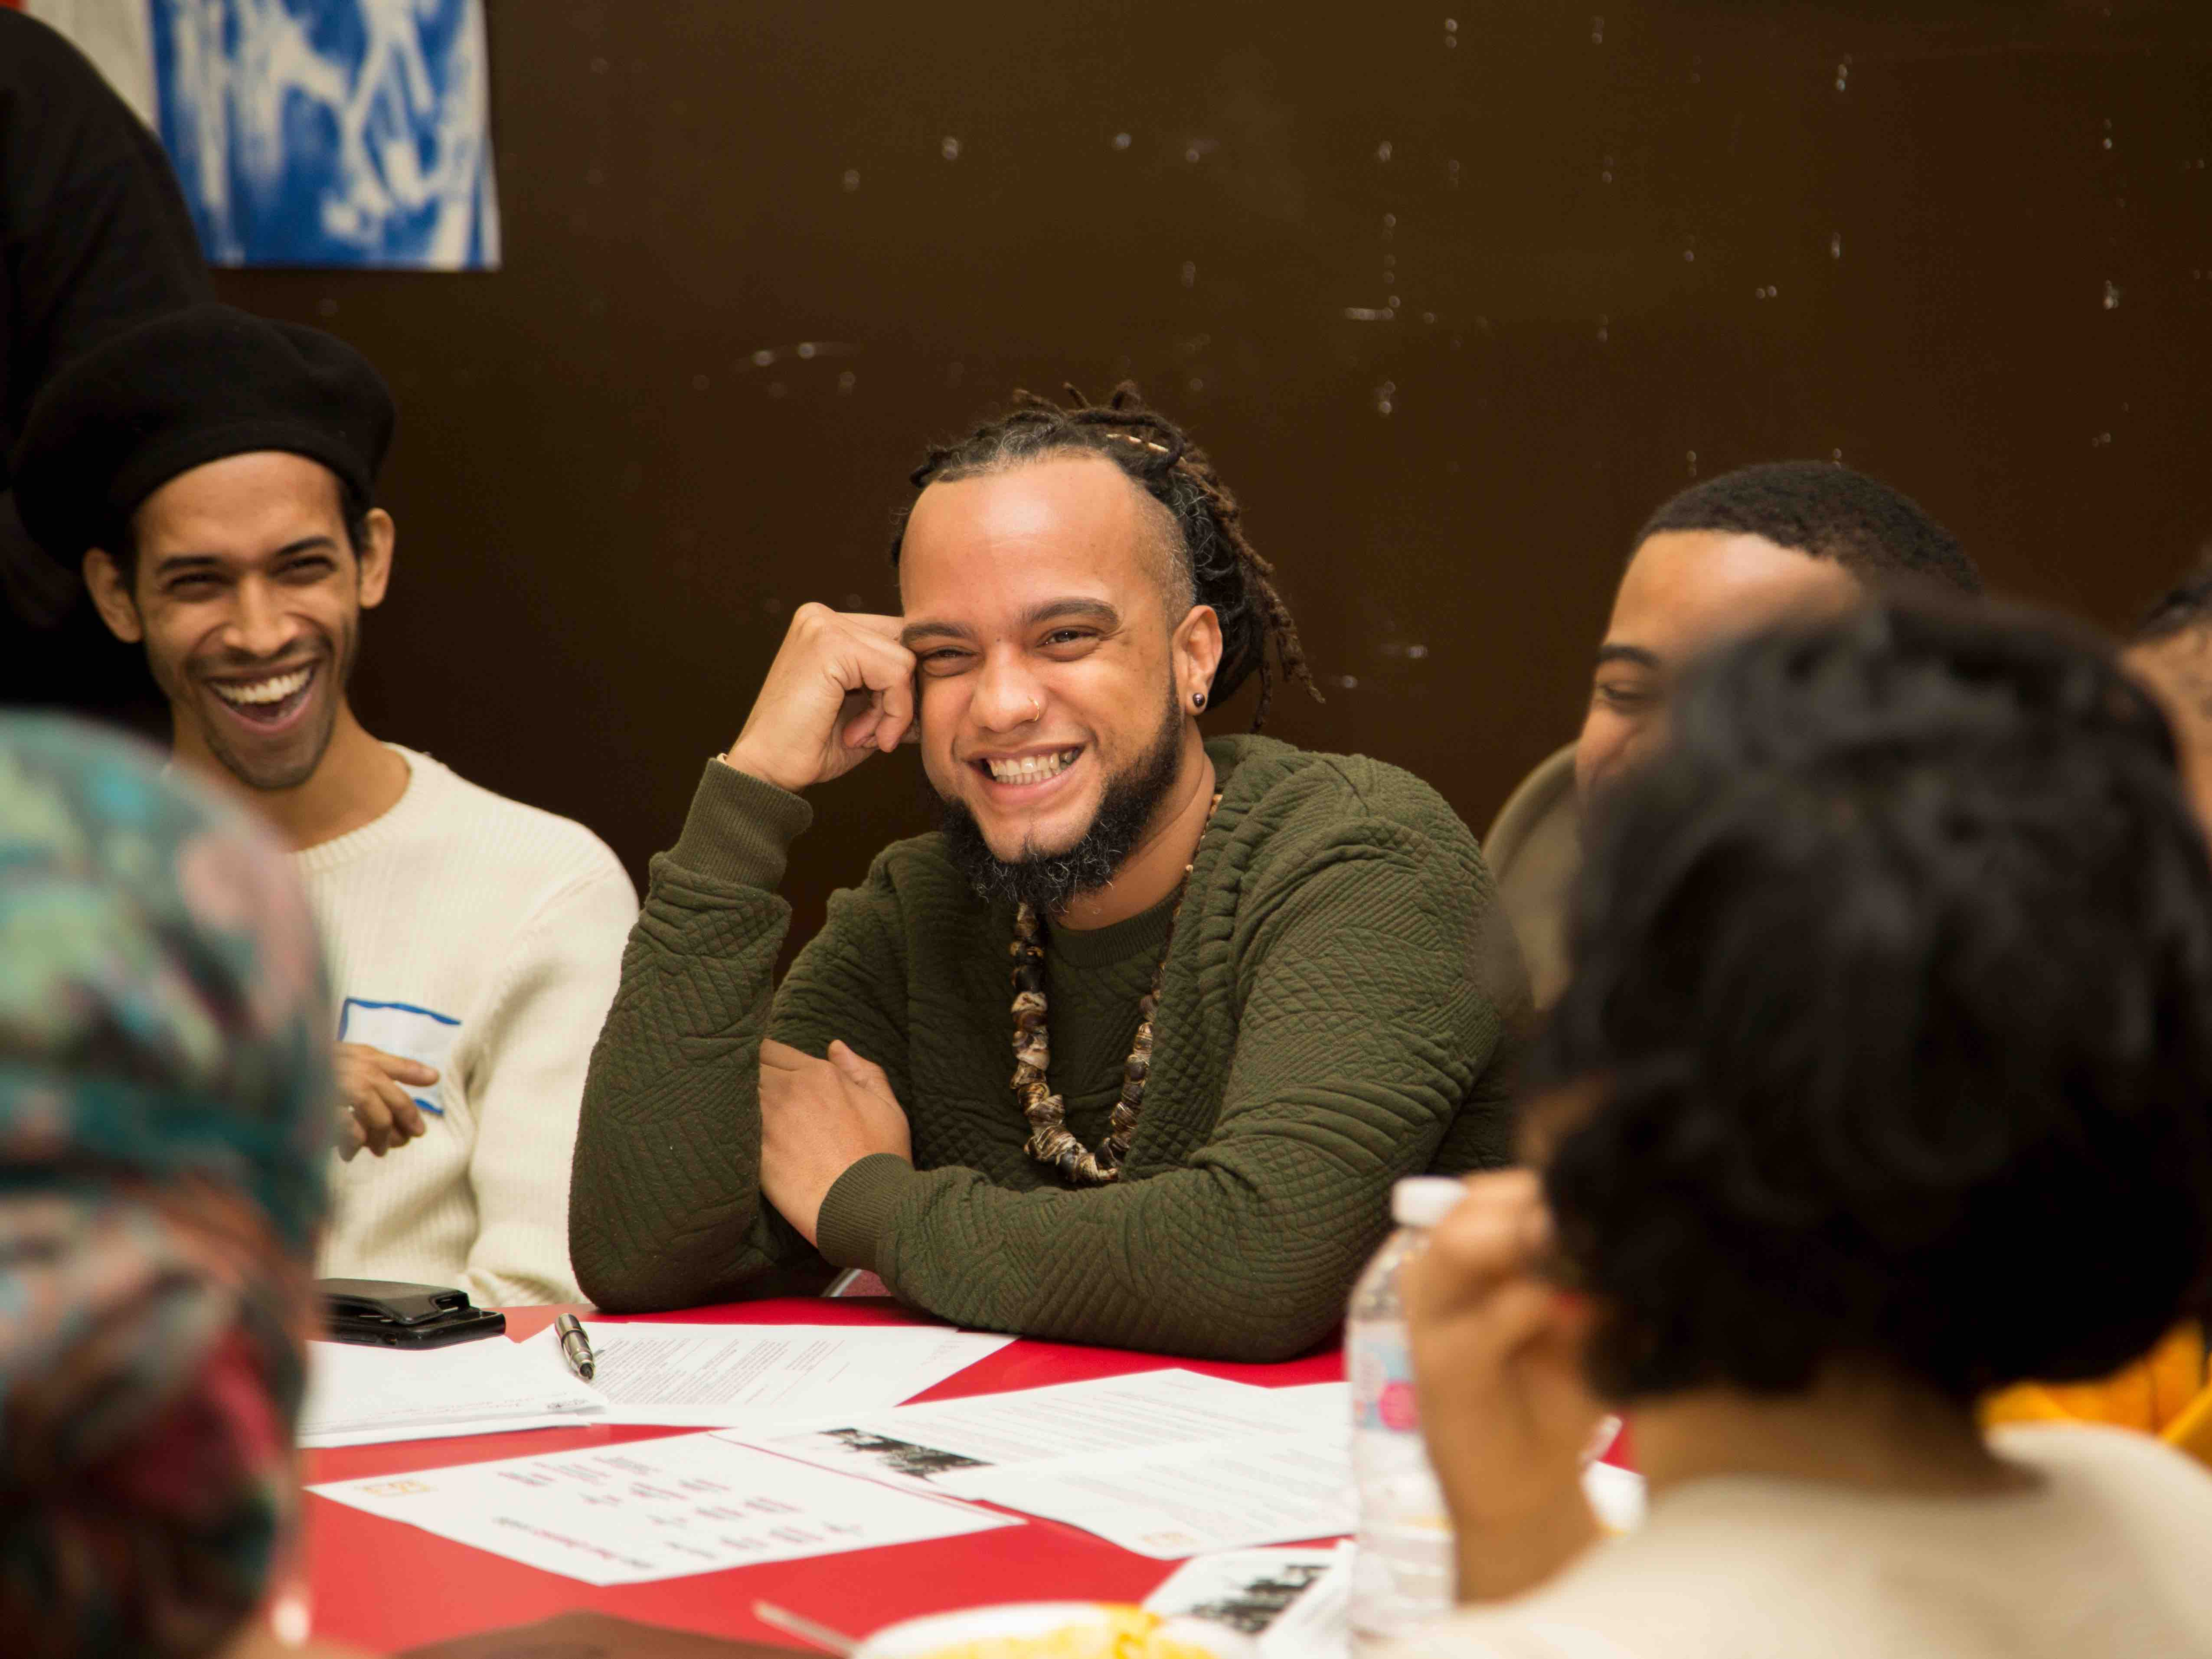 These Workshops Aim to Heal Haitian-Dominican Divides With Lessons on Their Shared History